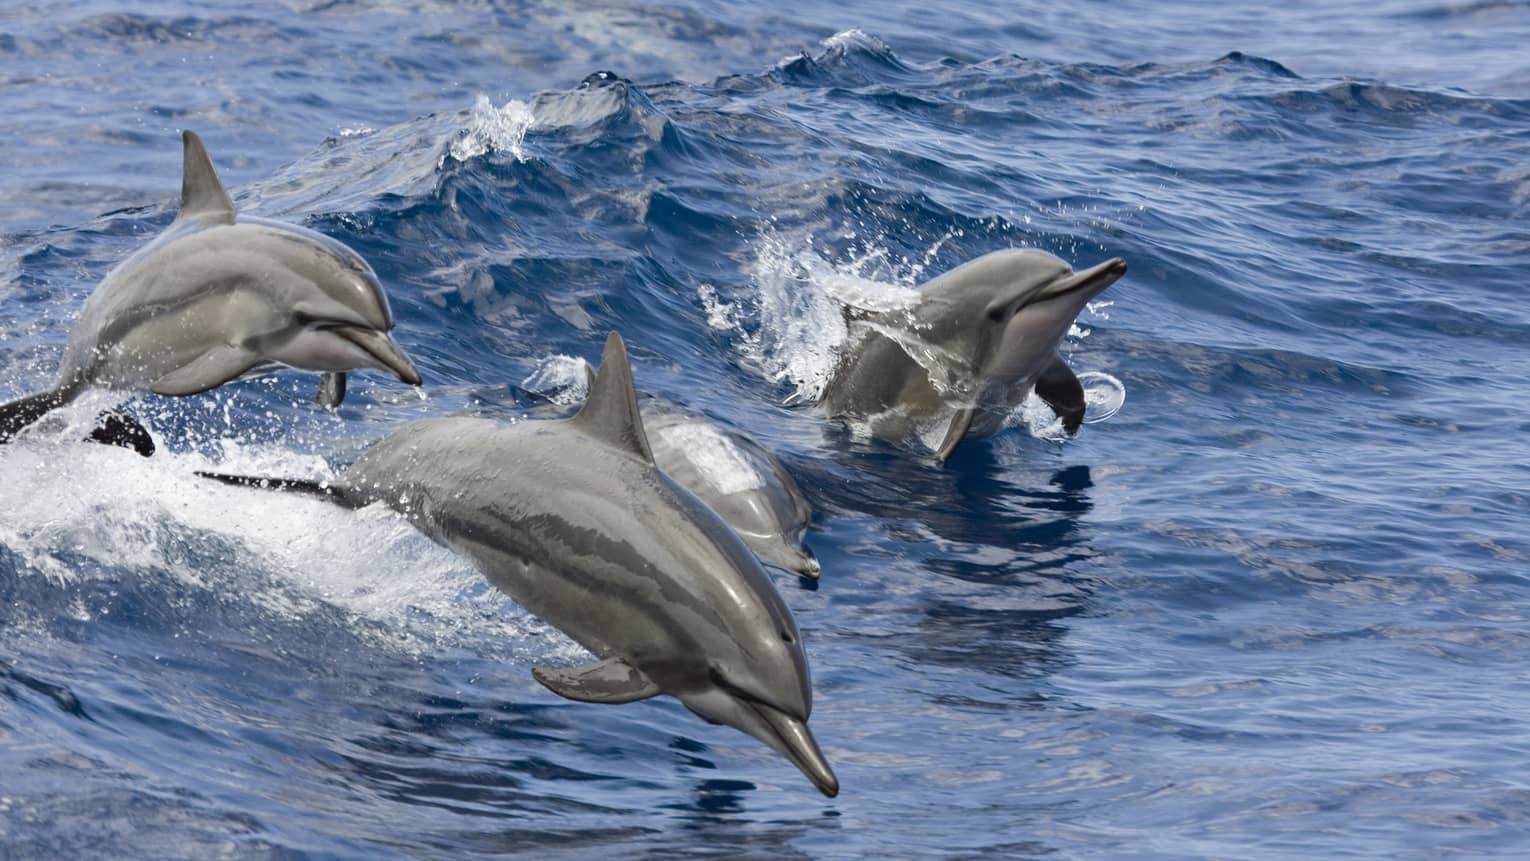 Three dolphins jump out of water from wave